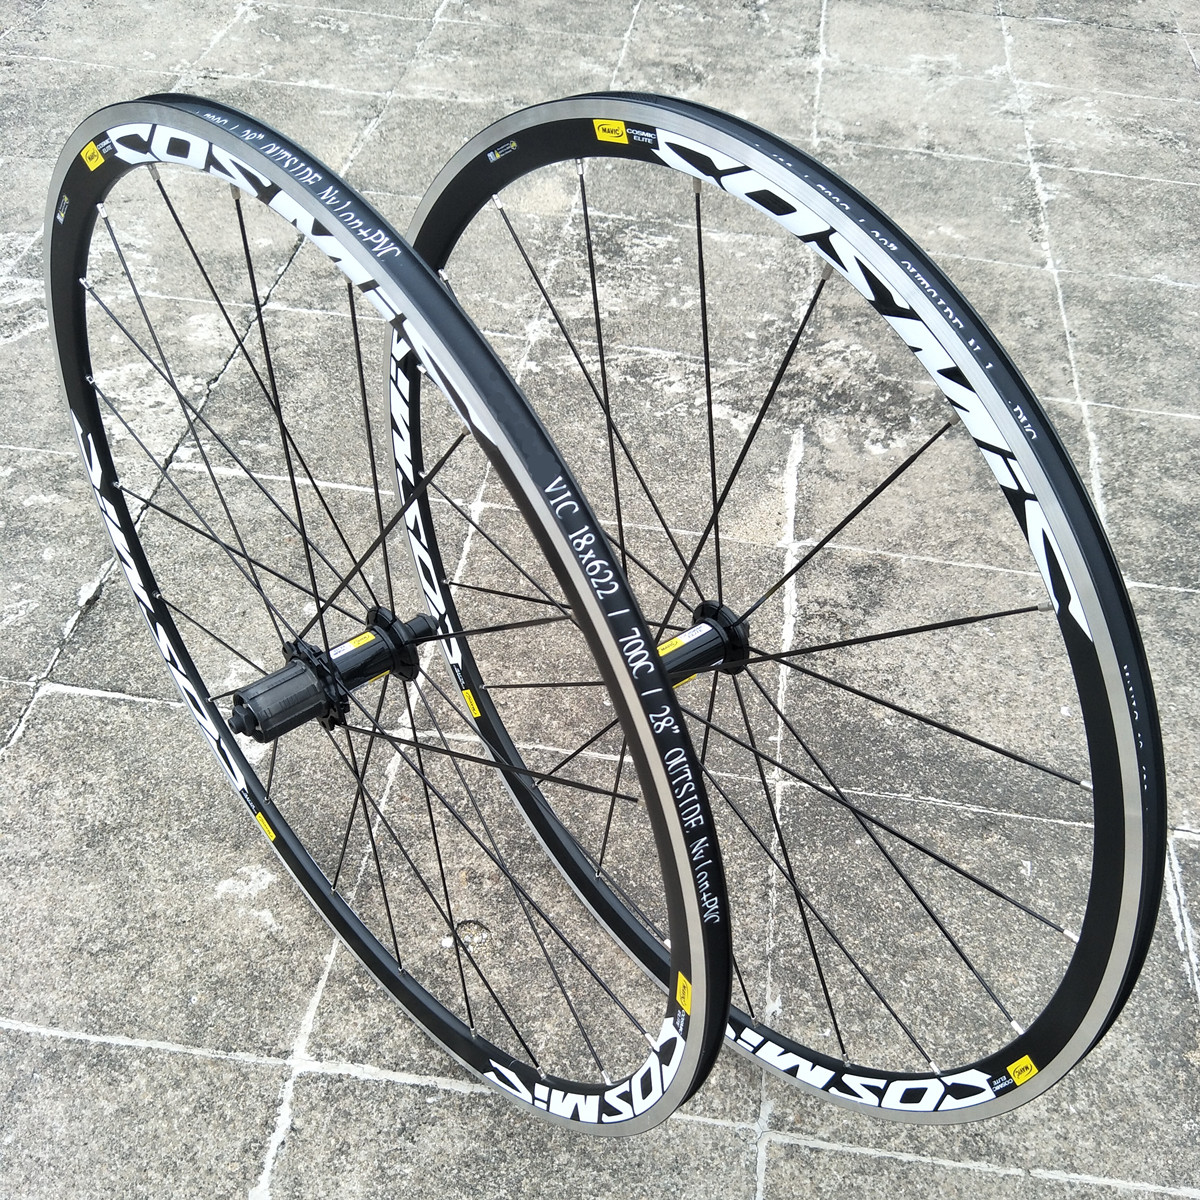 Hot sale Original 700C Cosmic Elite <font><b>BMX</b></font> Road Bike Bicycle <font><b>Wheel</b></font> Aluminium Alloy V Brake <font><b>Wheels</b></font> 30mm Rim Wheelset image